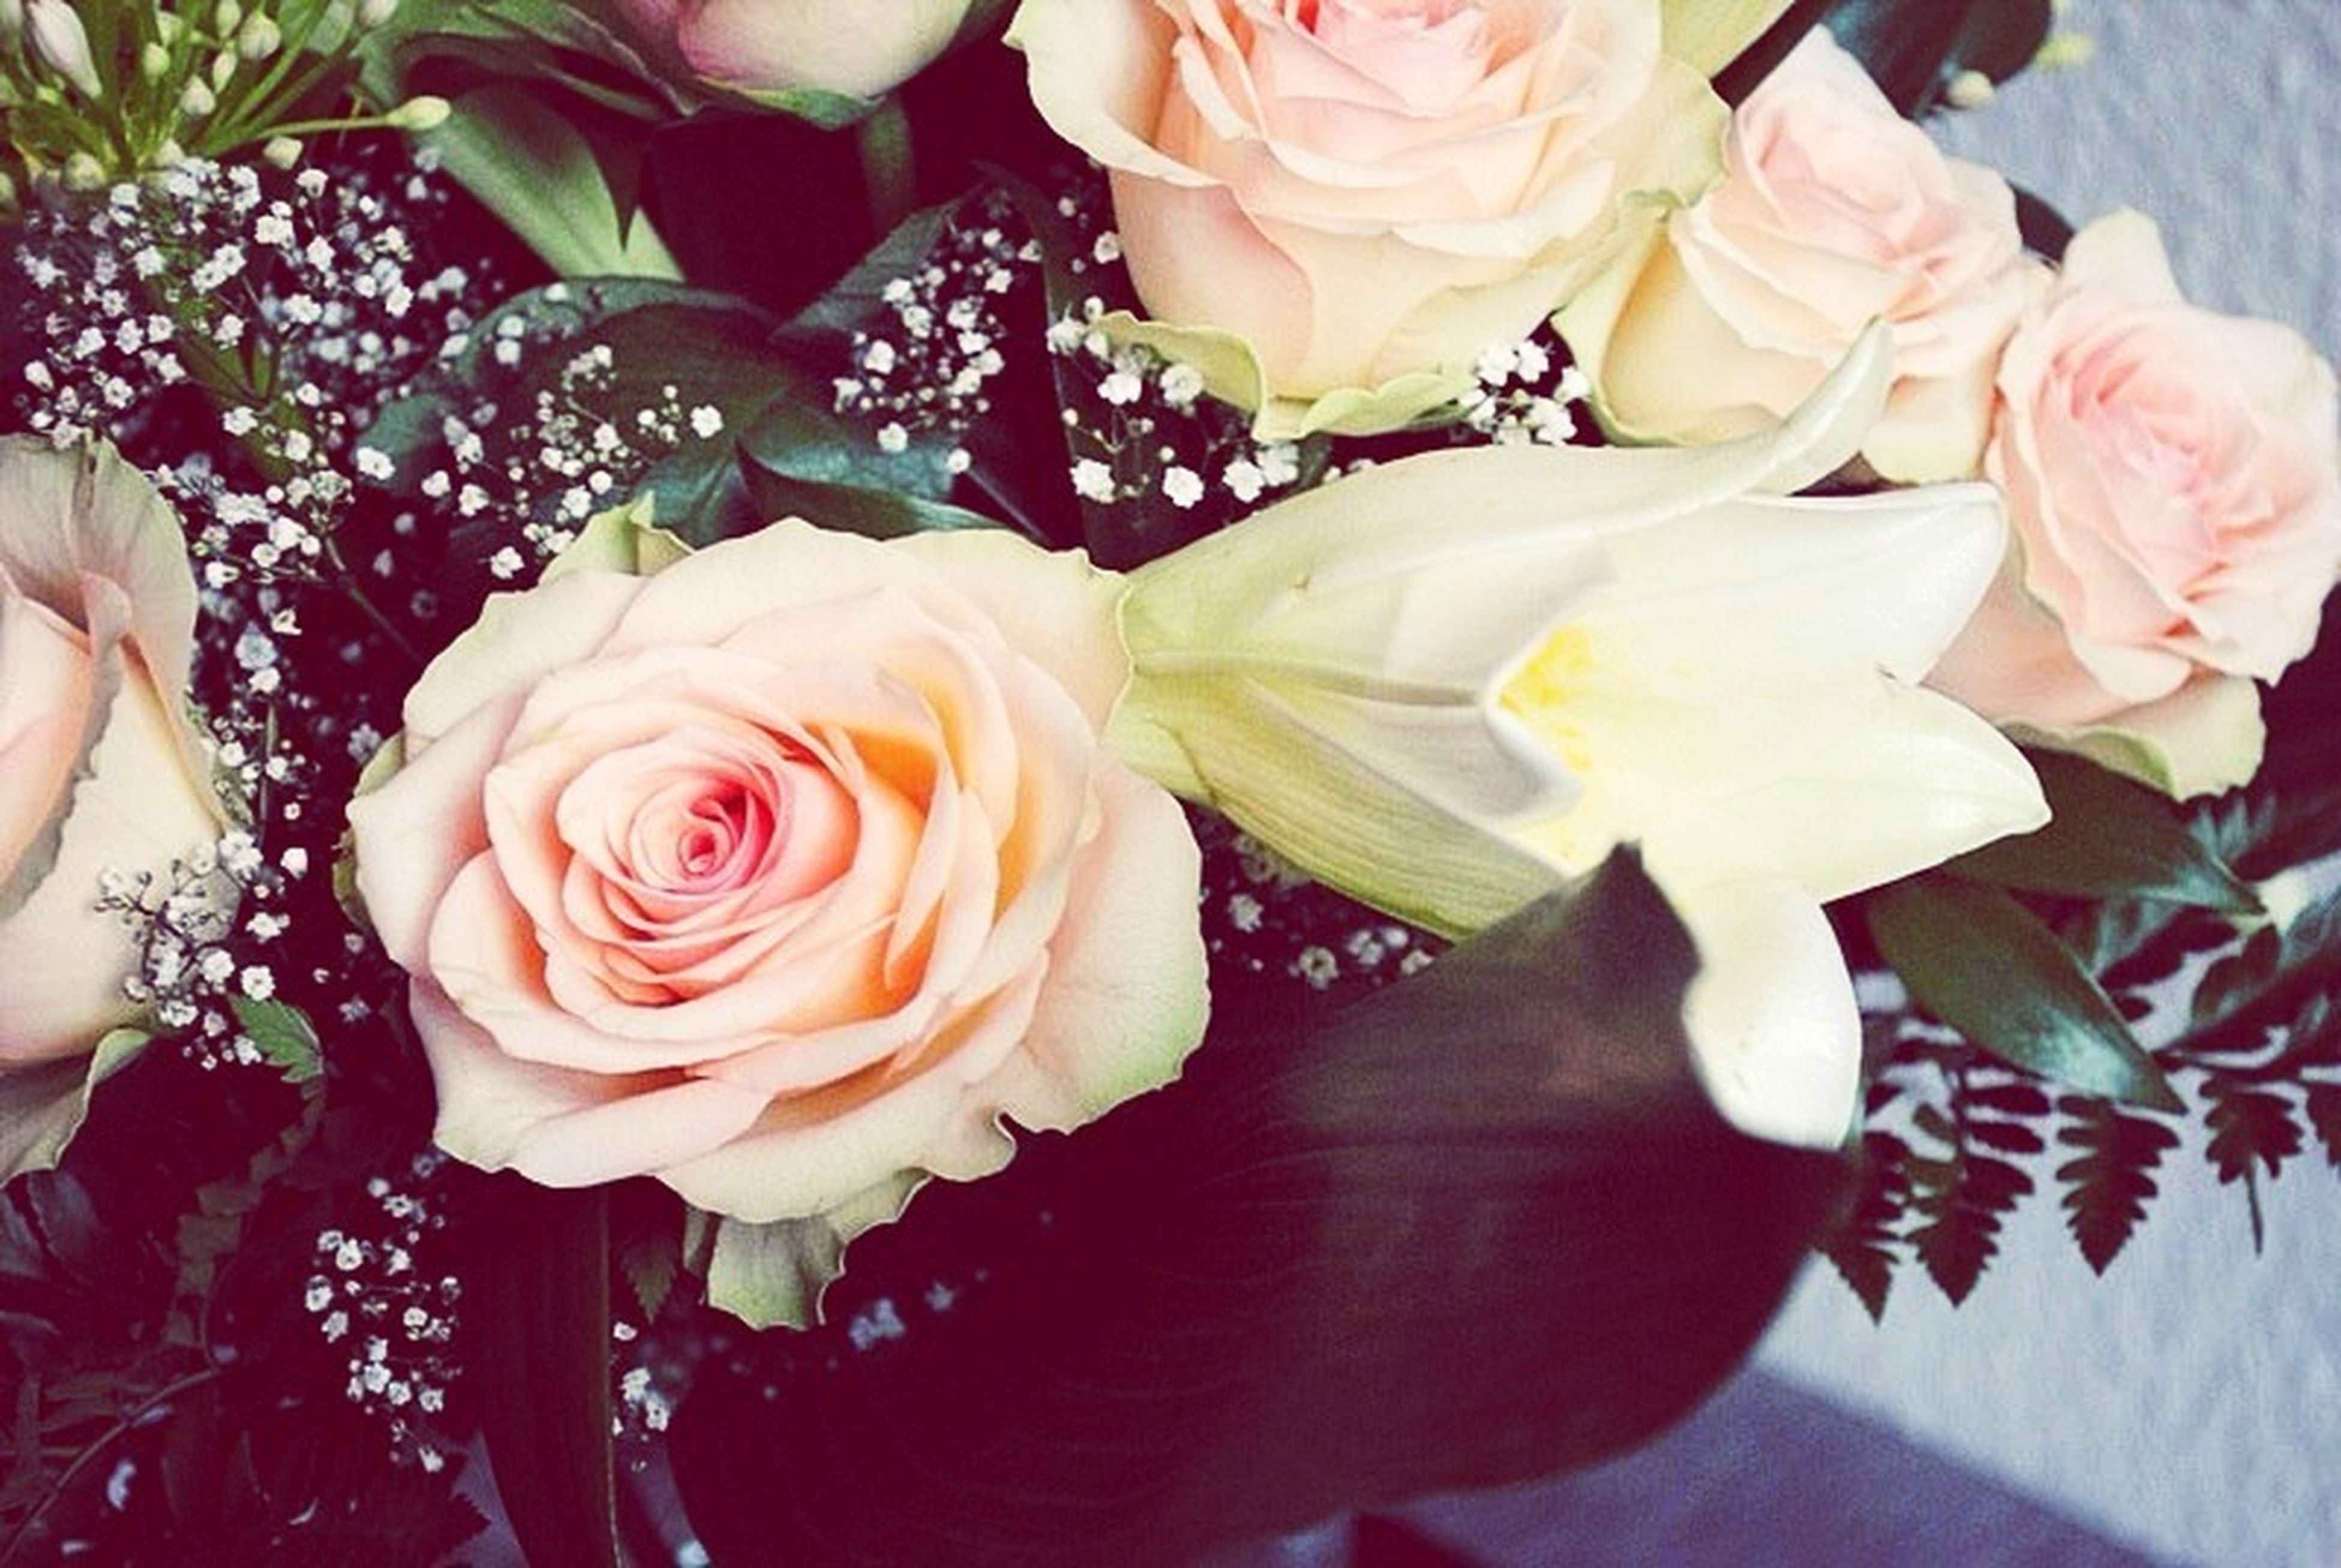 flower, rose - flower, freshness, petal, flower head, fragility, bouquet, indoors, rose, beauty in nature, pink color, close-up, high angle view, bunch of flowers, nature, blooming, vase, growth, in bloom, blossom